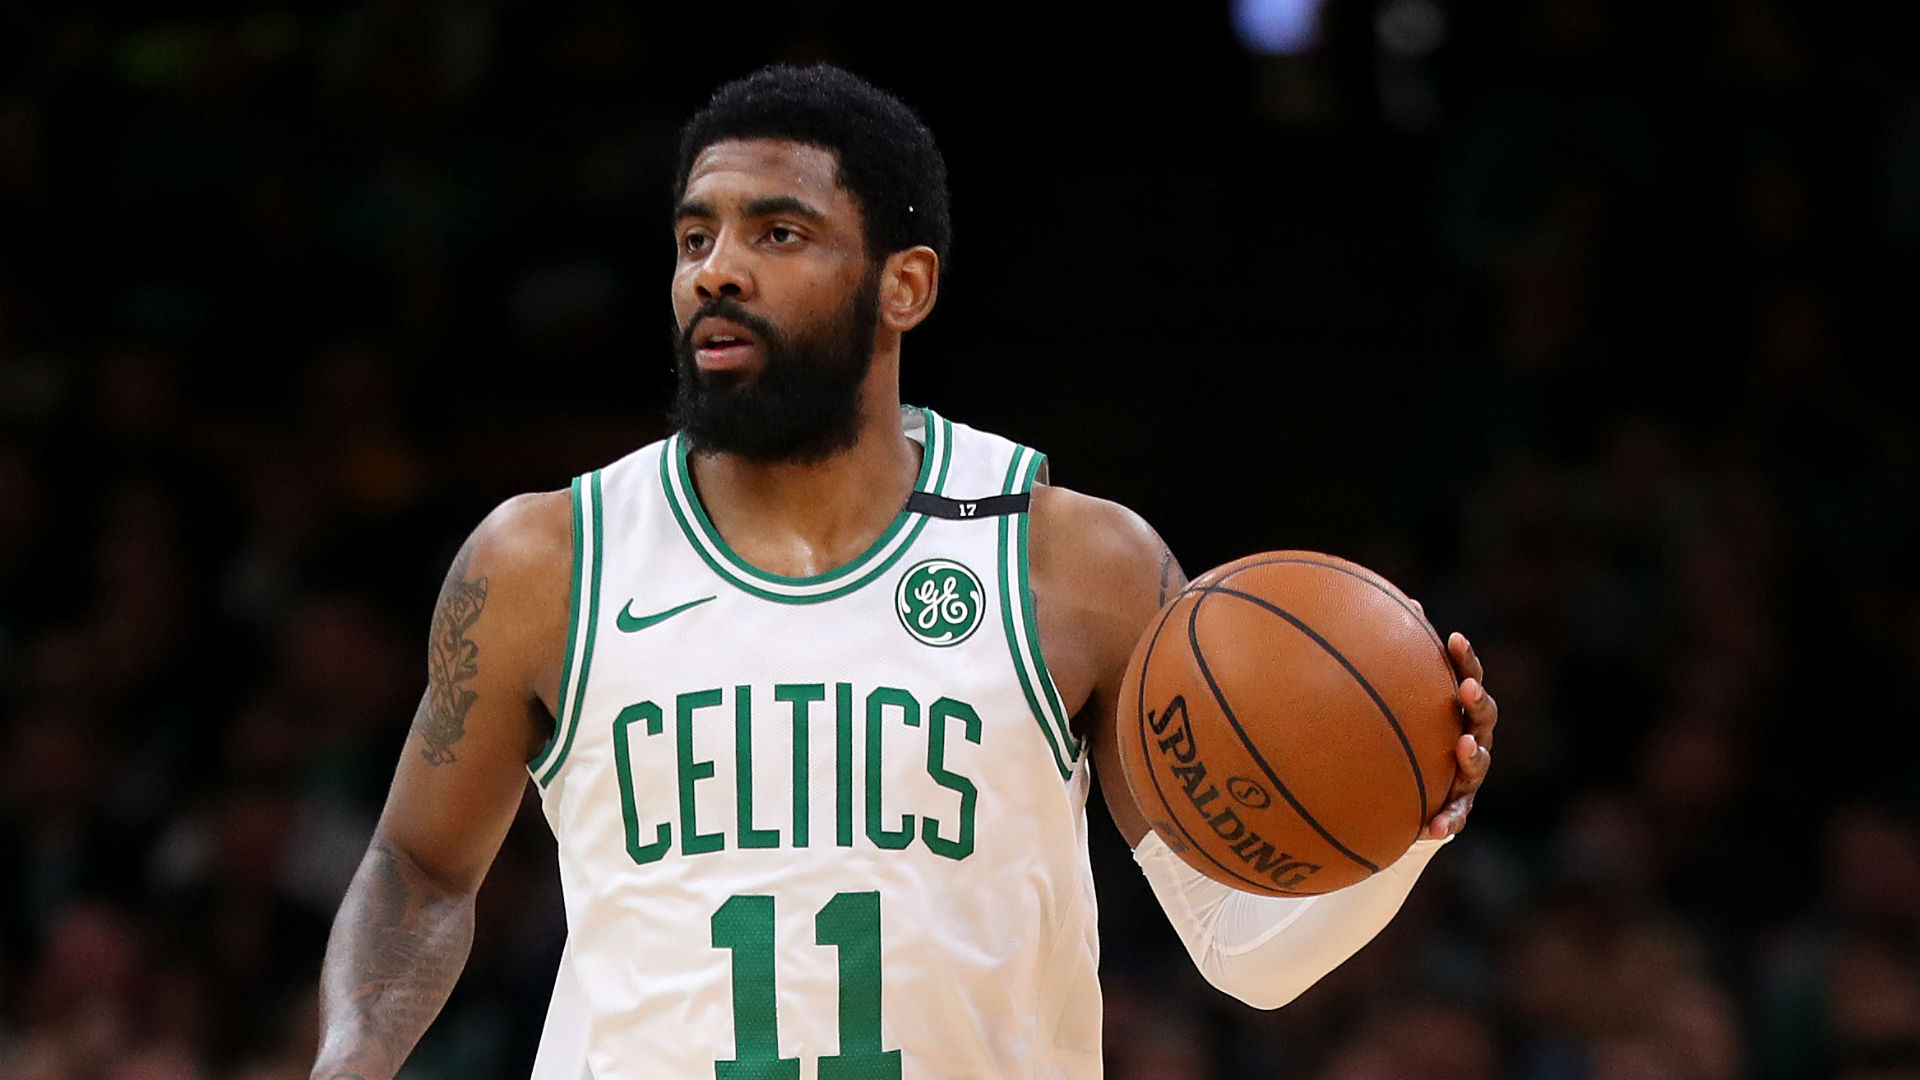 Kyrie Irving free agency rumors: Star 'prepared to sign' with Nets